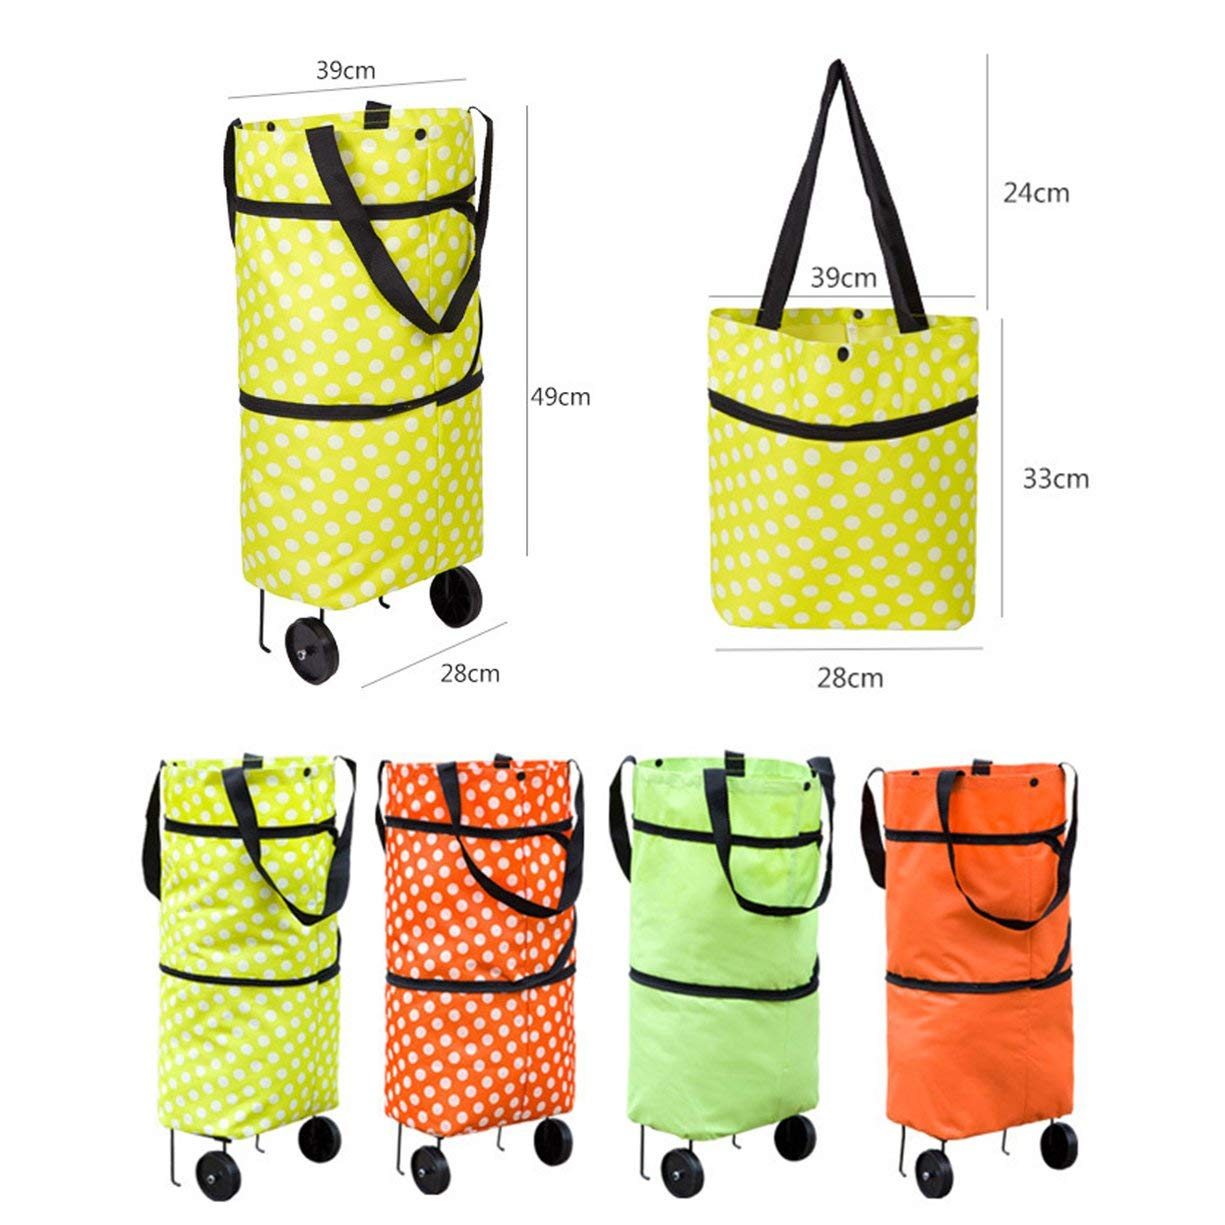 Shopping Trolley Wheel Bag,Fashionable Design Large Capacity Waterproof Oxford Cloth Foldable Shopping Trolley Wheel Bag Traval Cart Luggage Bag by Detectoy (Image #5)